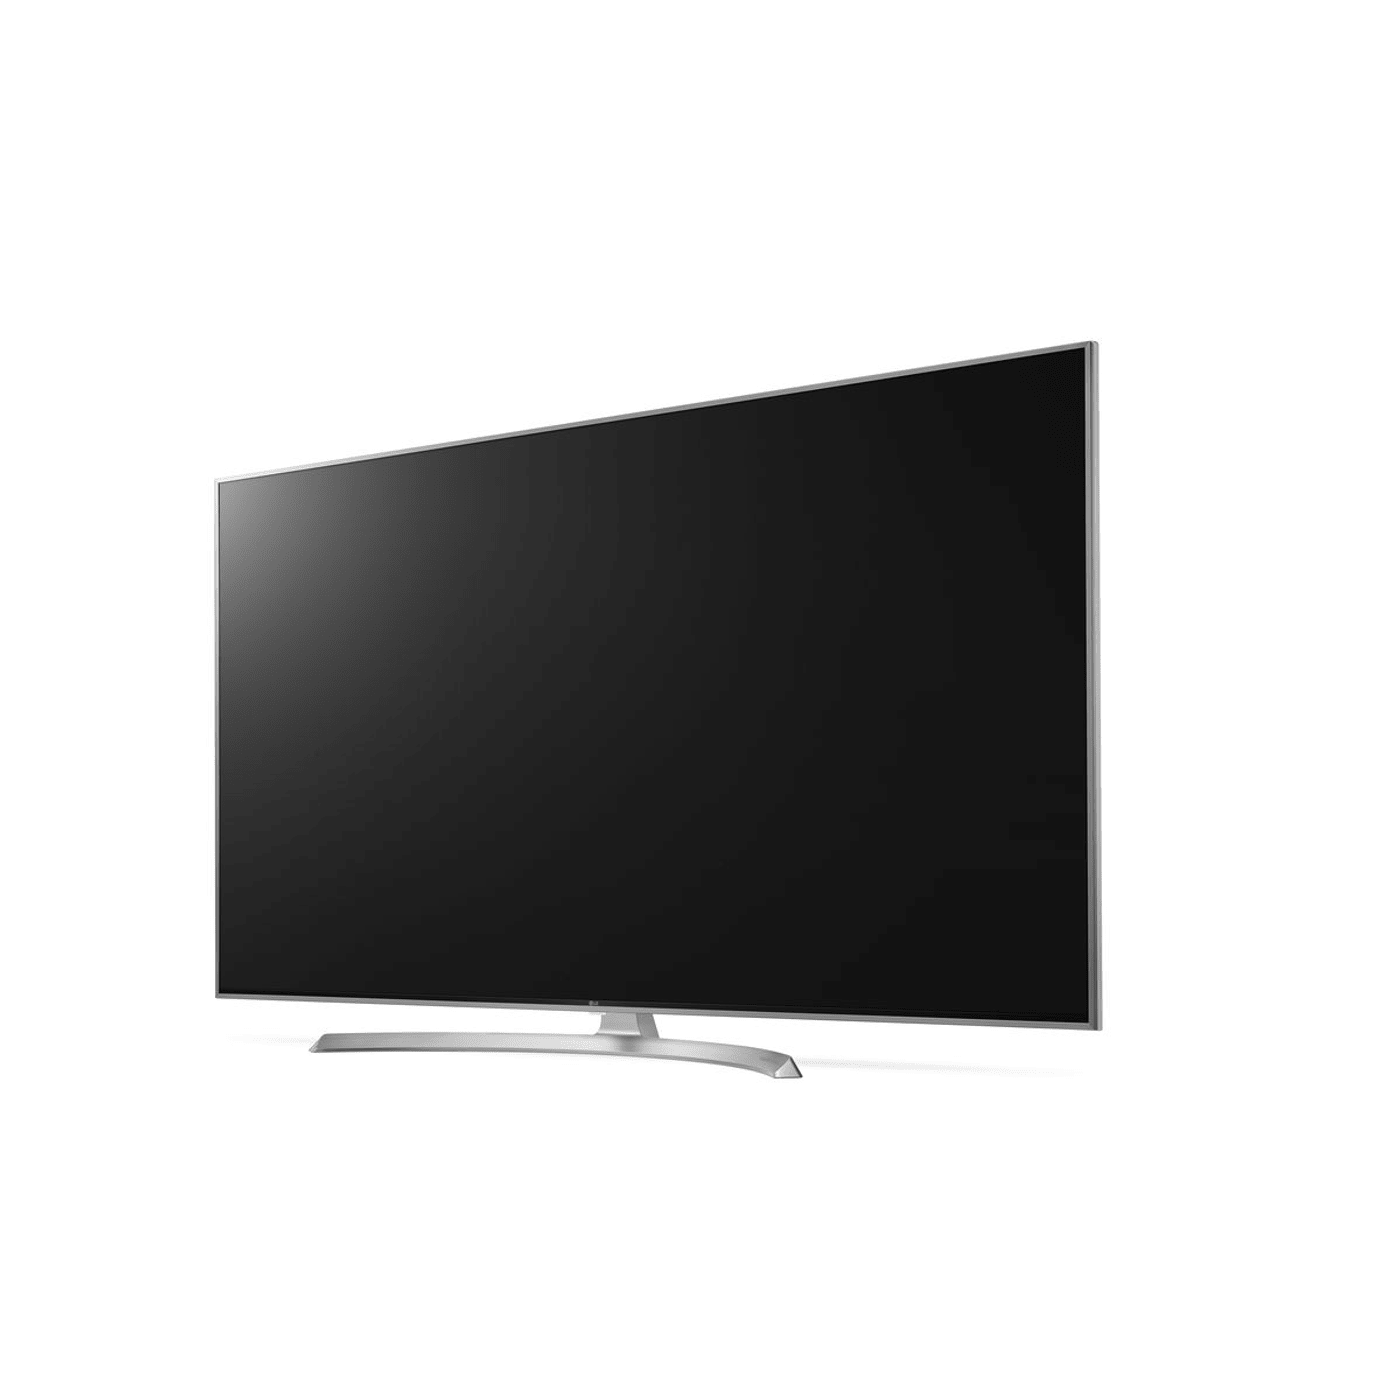 lg 49sj810v 123 cm 4k fernseher fernseher migros. Black Bedroom Furniture Sets. Home Design Ideas